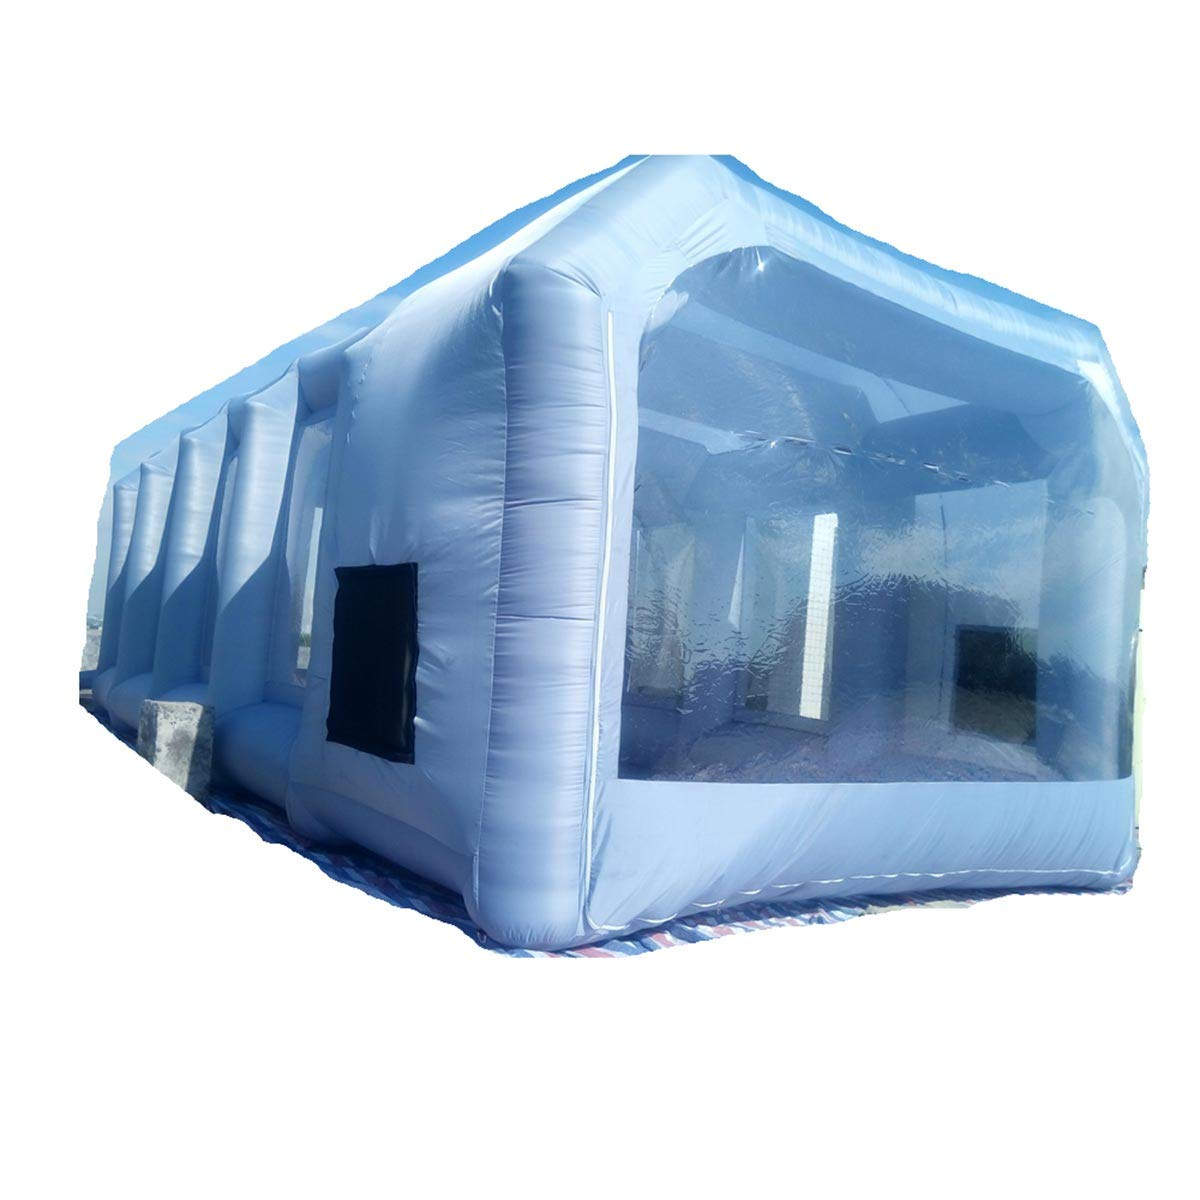 Inflatable Spray Booth Custom Tent Car Paint Booth Inflatable Car (26x13x10Ft) by LIVIQILY (Image #1)